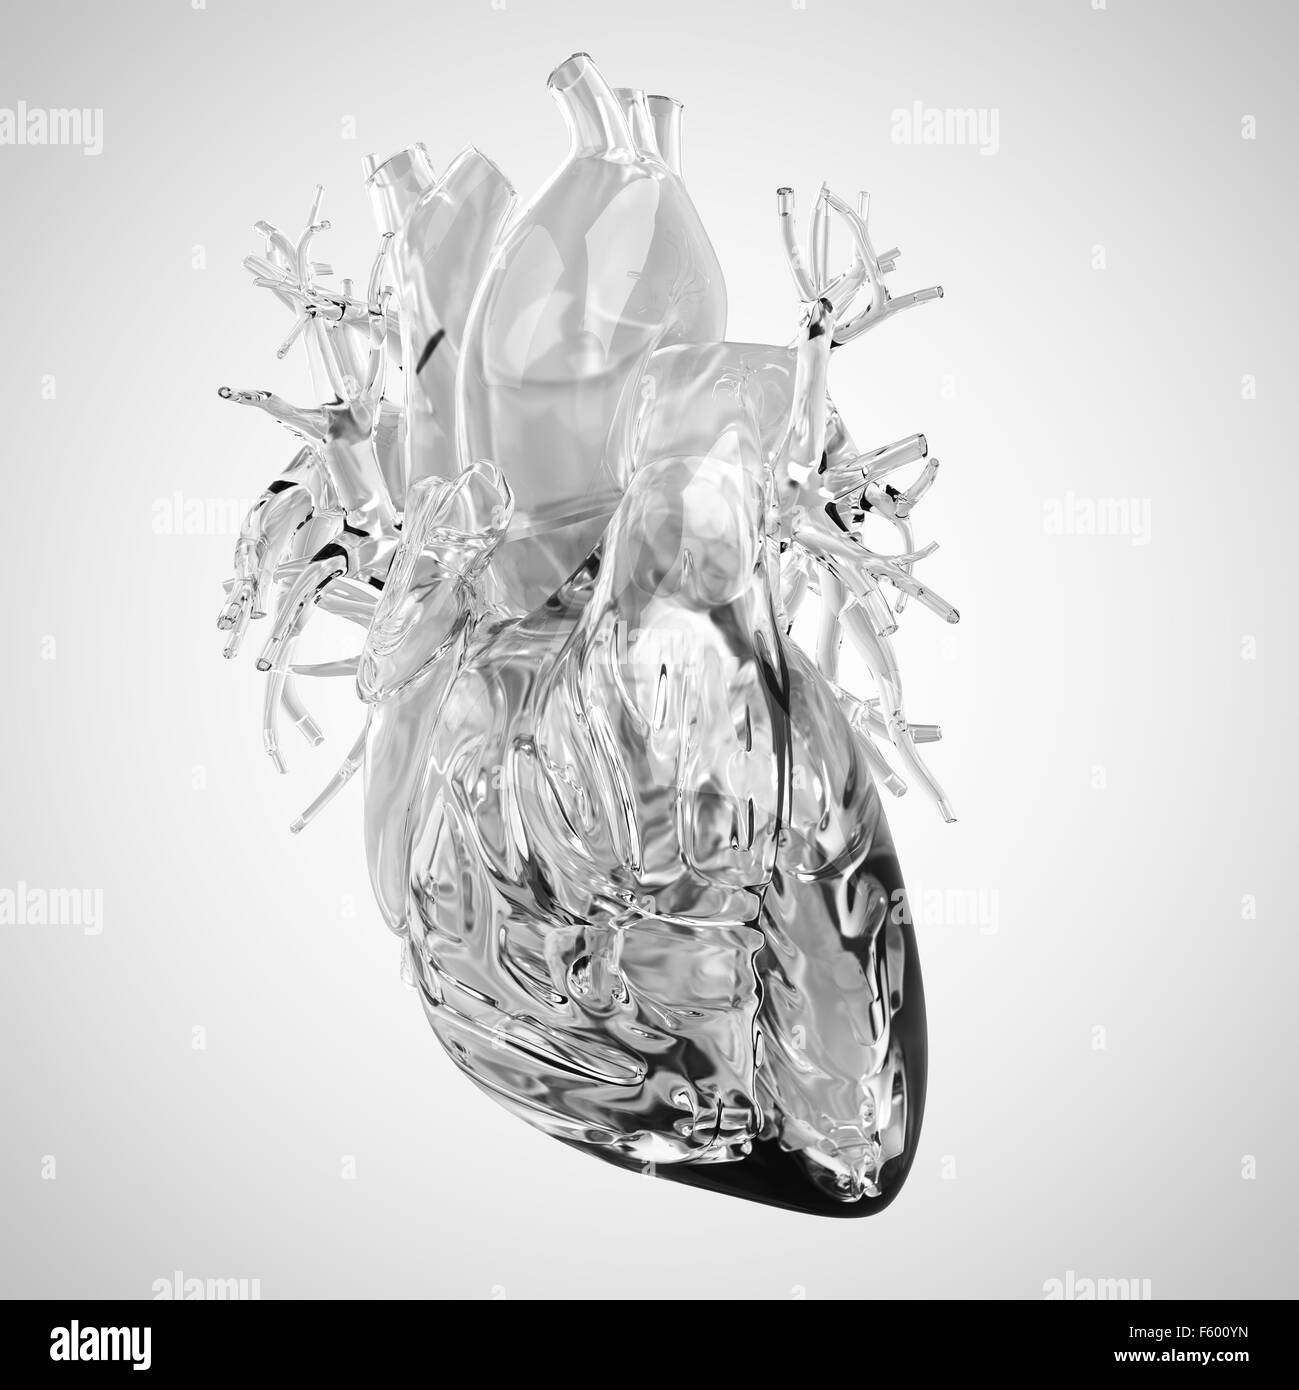 medically accurate illustration of human heart made of glass - Stock Image